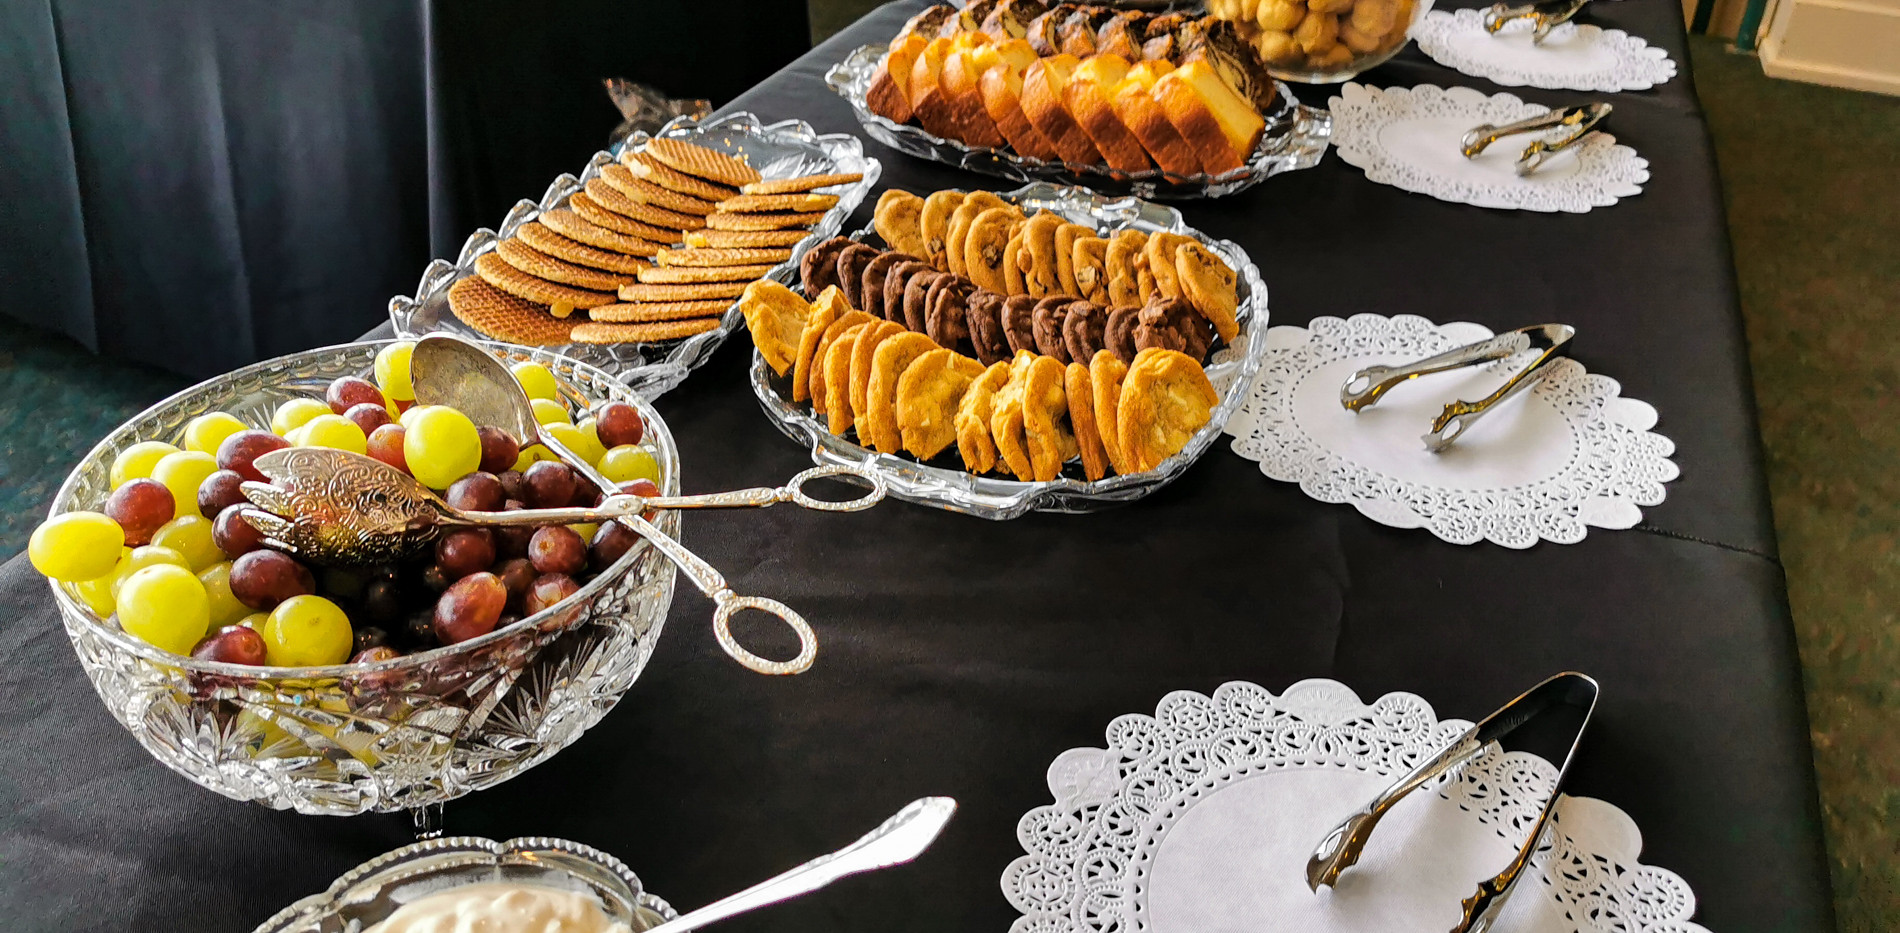 Assortments of Sweets and Pastries